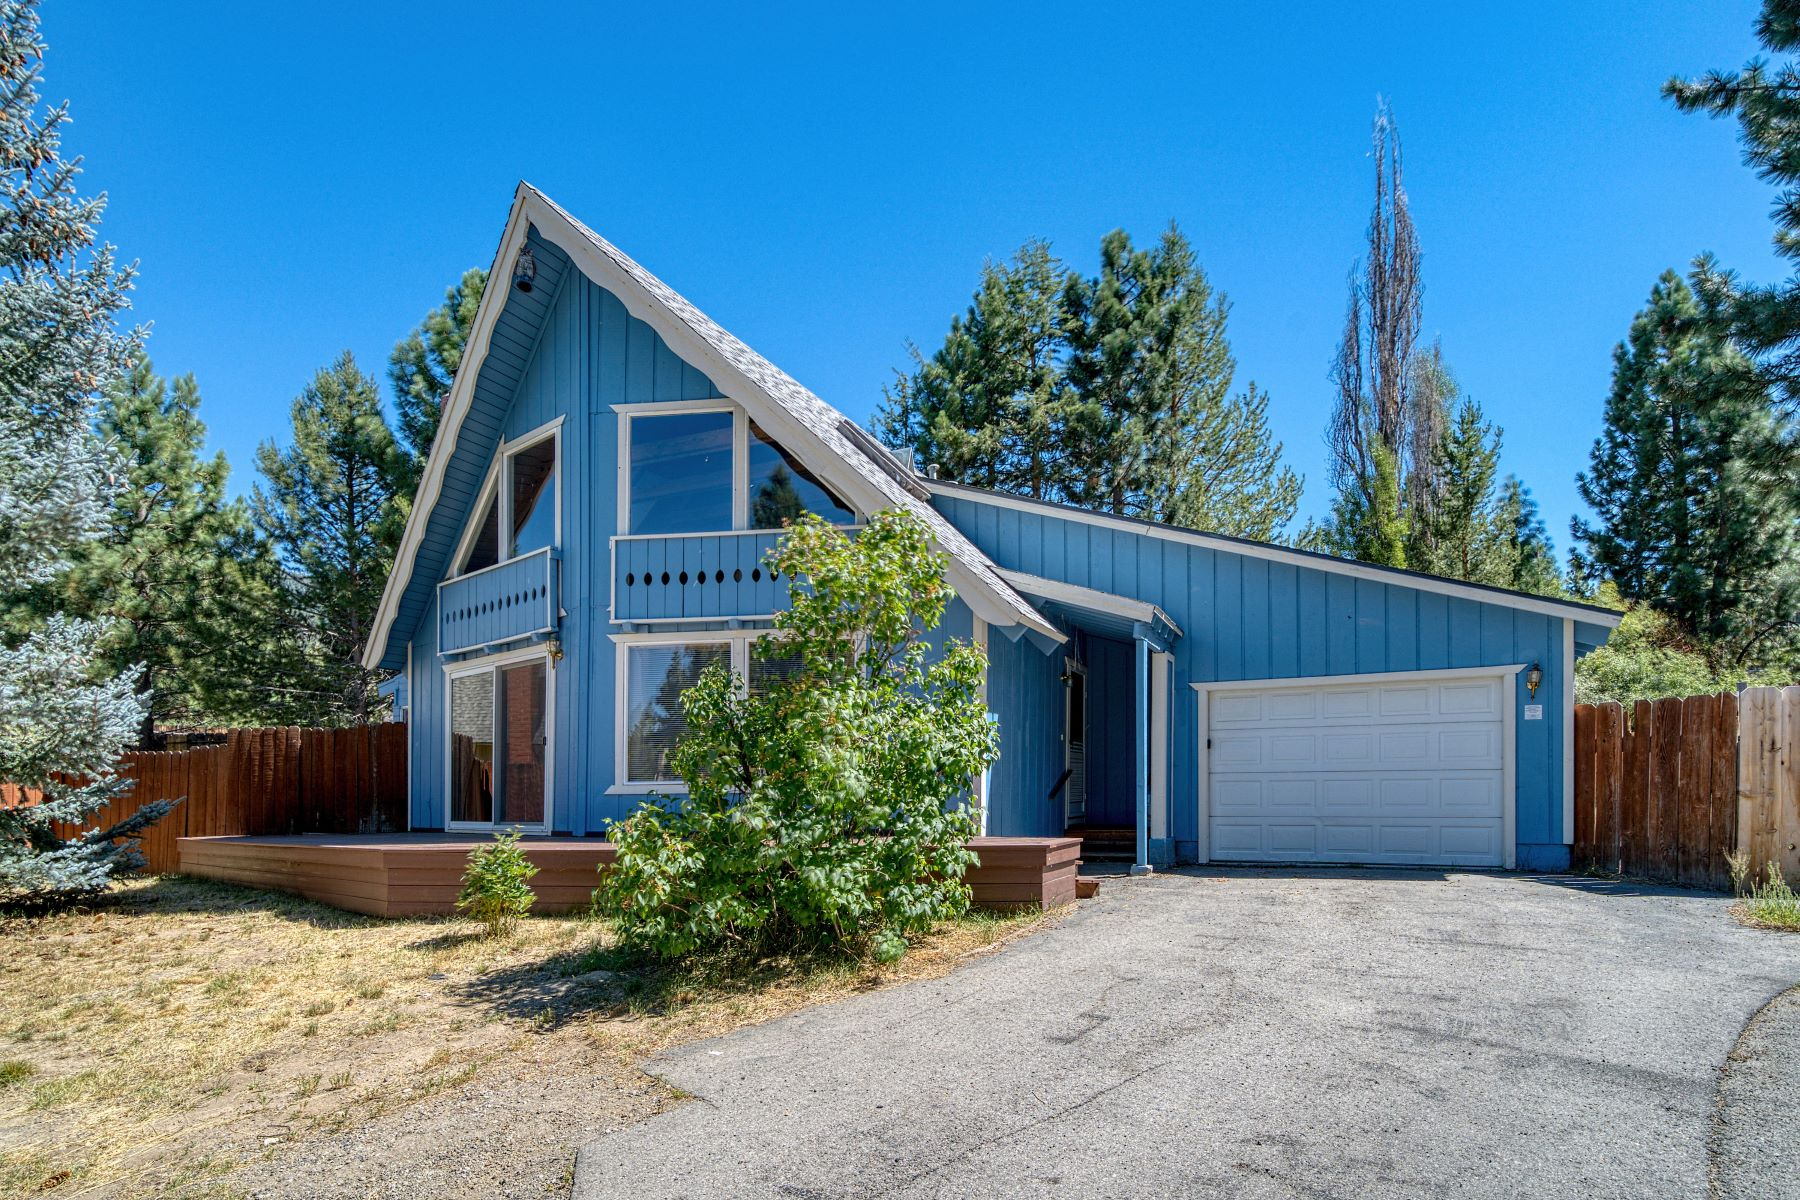 Single Family Homes for Active at Pioneer Village Retreat 1401 Friant Court South Lake Tahoe, California 96150 United States